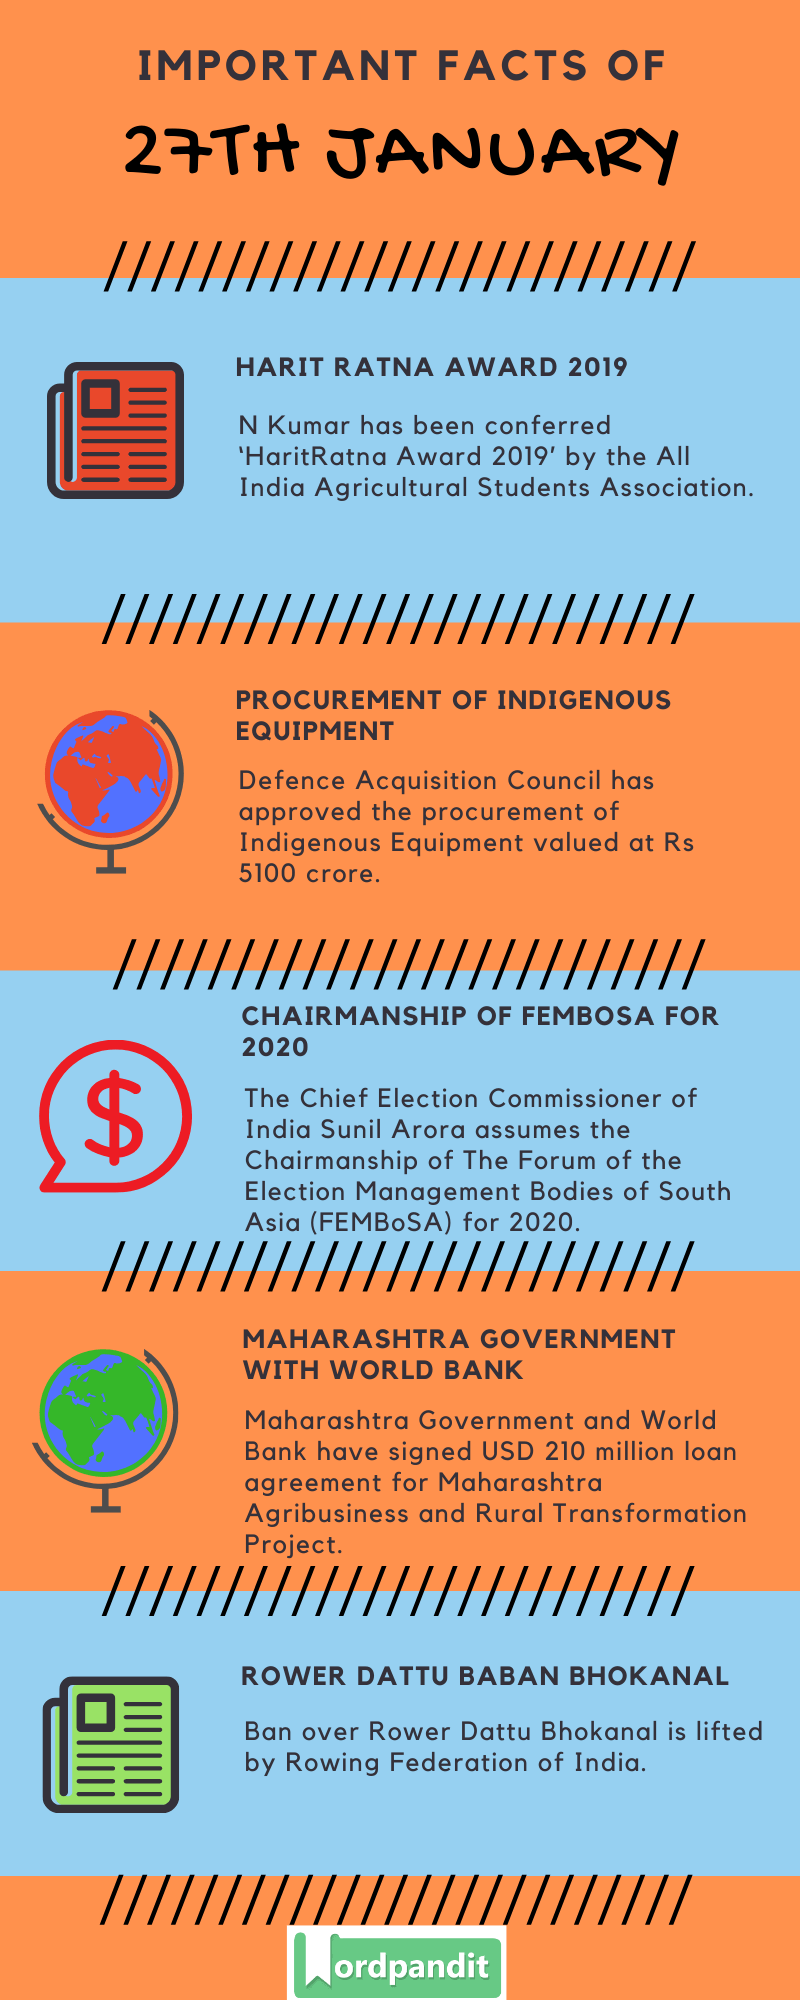 Daily Current Affairs 27 January 2020 Current Affairs Quiz 27 January 2020 Current Affairs Infographic